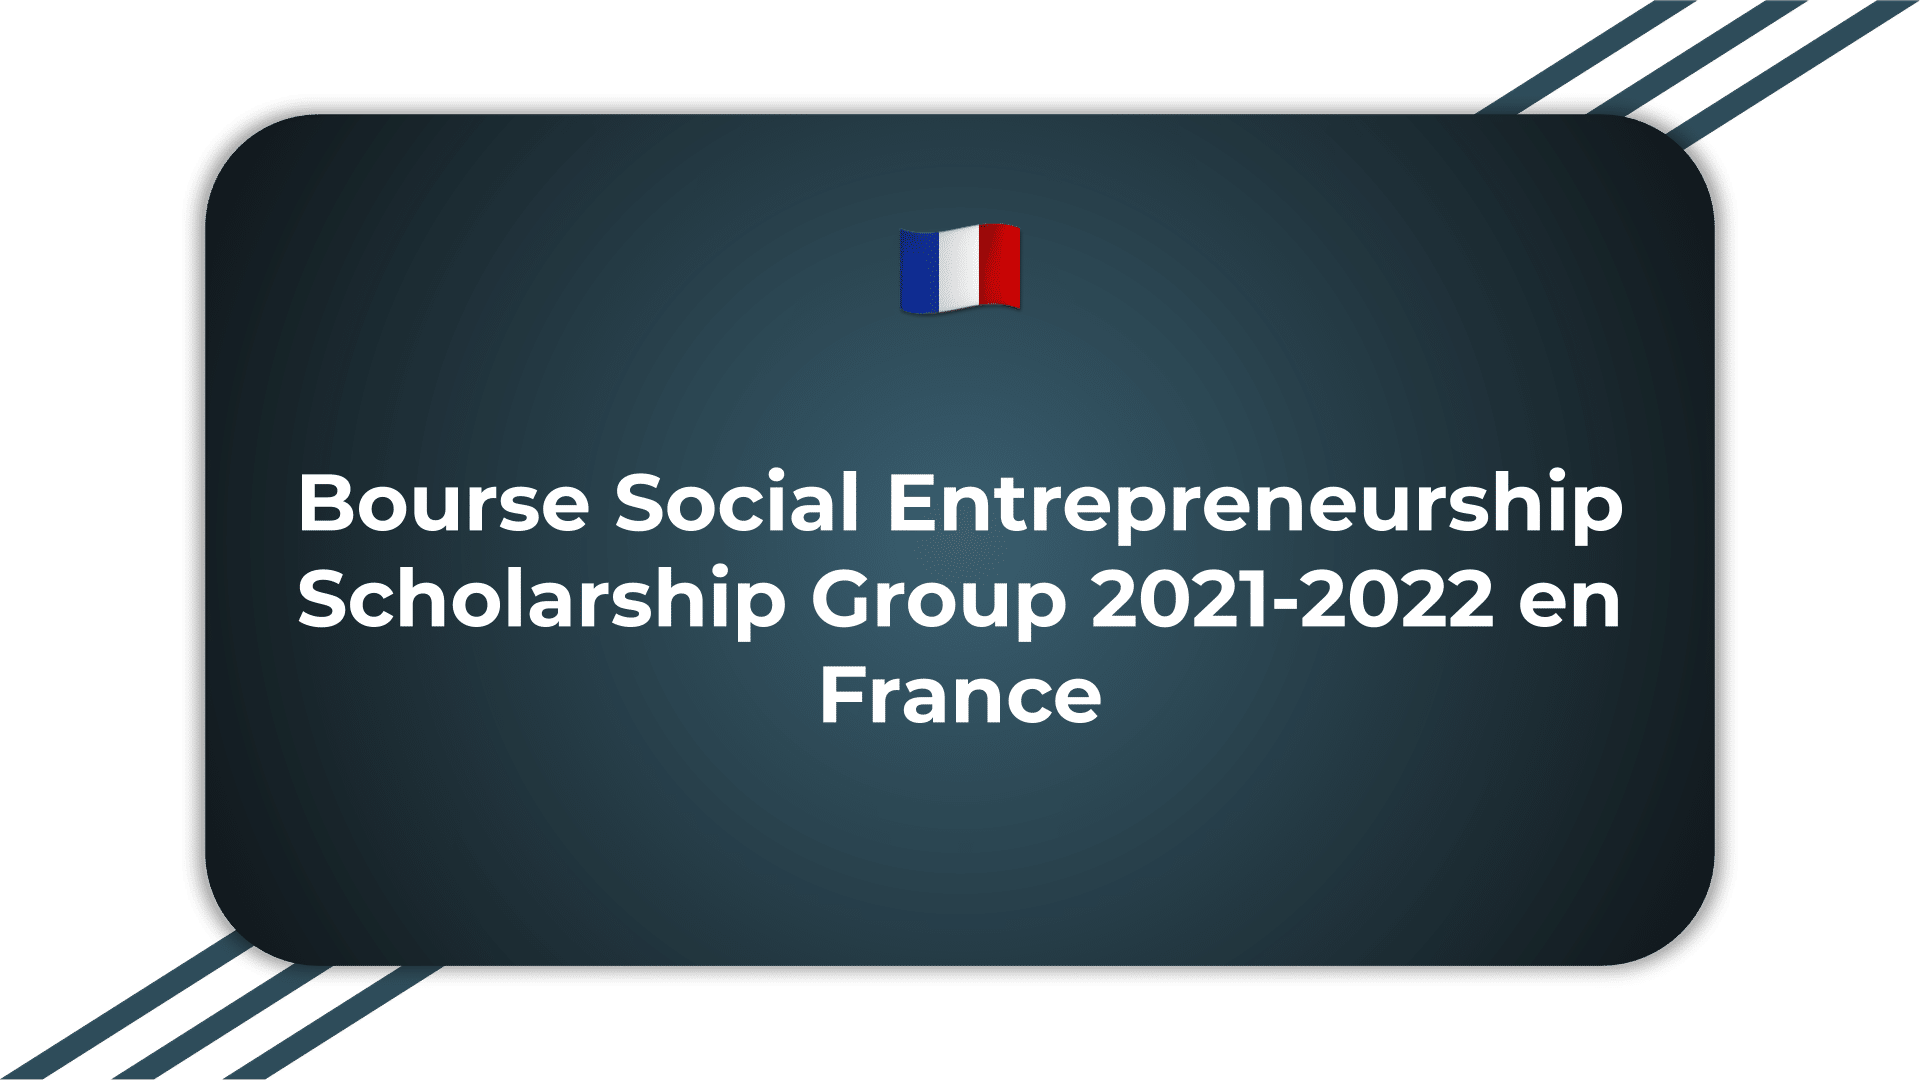 Bourse Social Entrepreneurship Scholarship Group